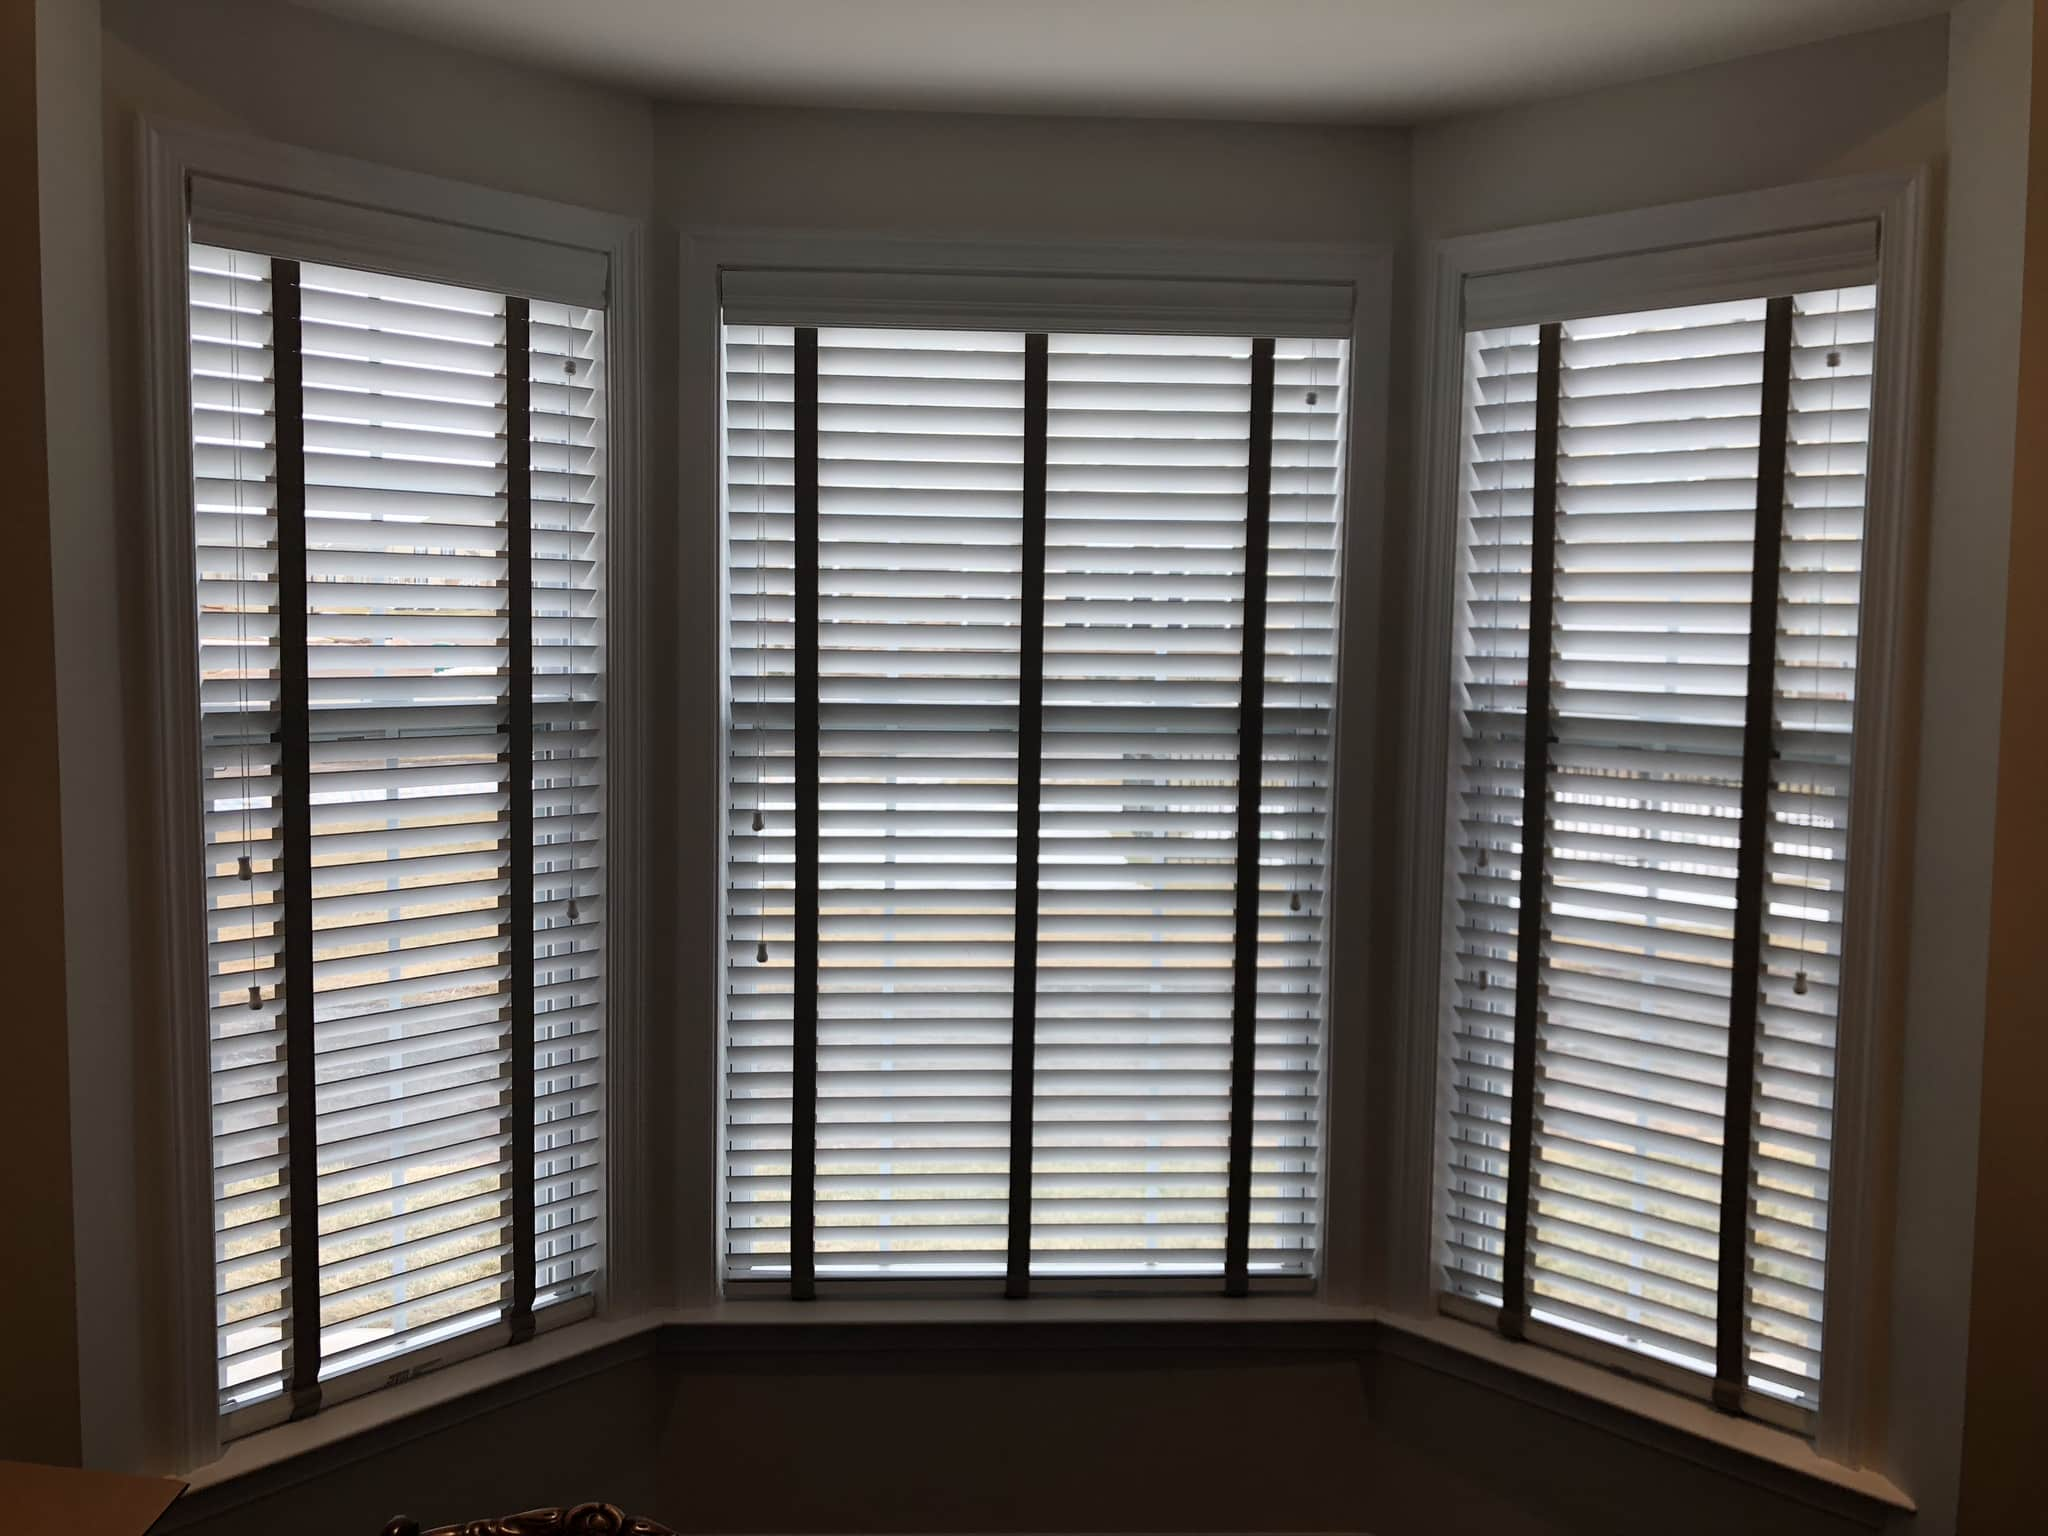 Cost Of Roller Blinds How Much Window Blinds Cost And How To Choose The Right Ones